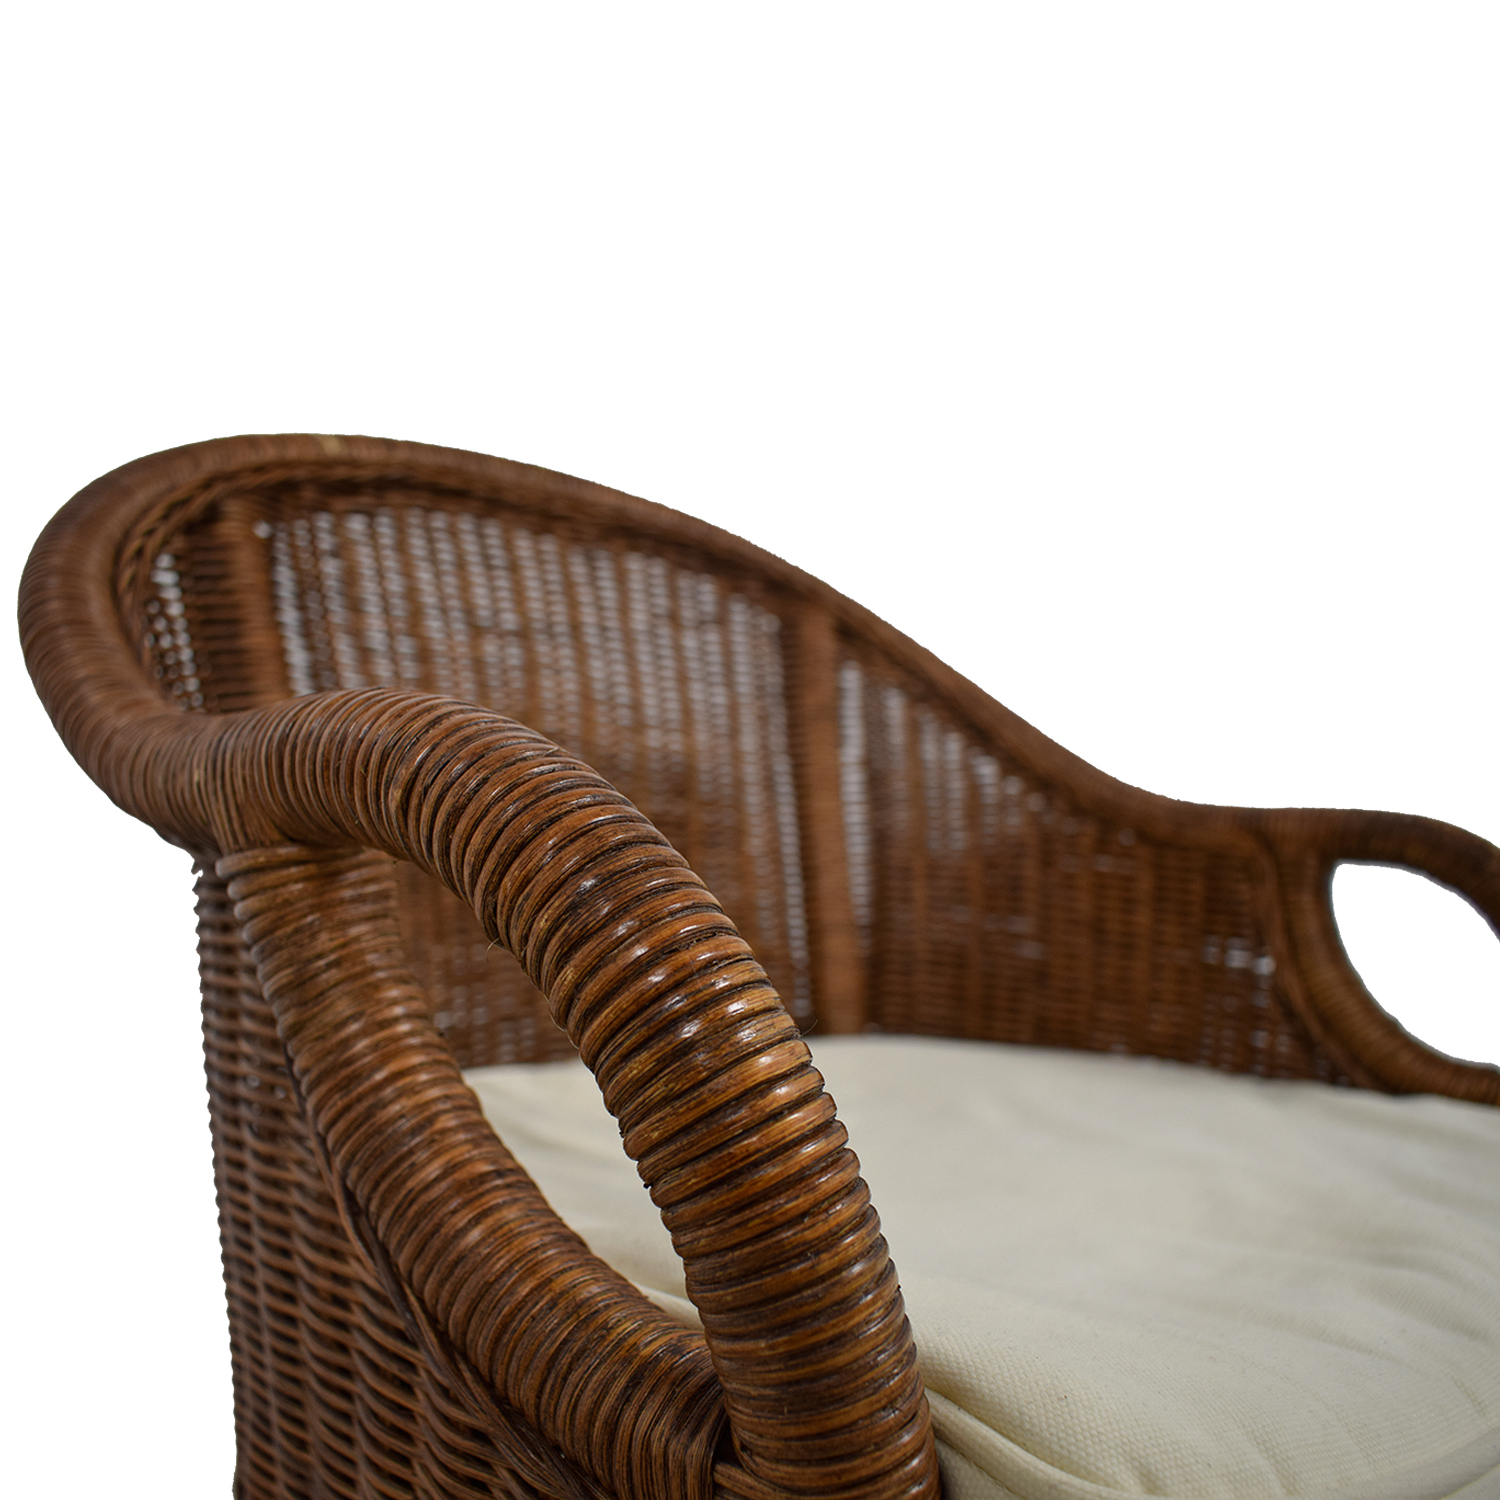 Pottery Barn Wicker Couch Coffee Tables Ideas